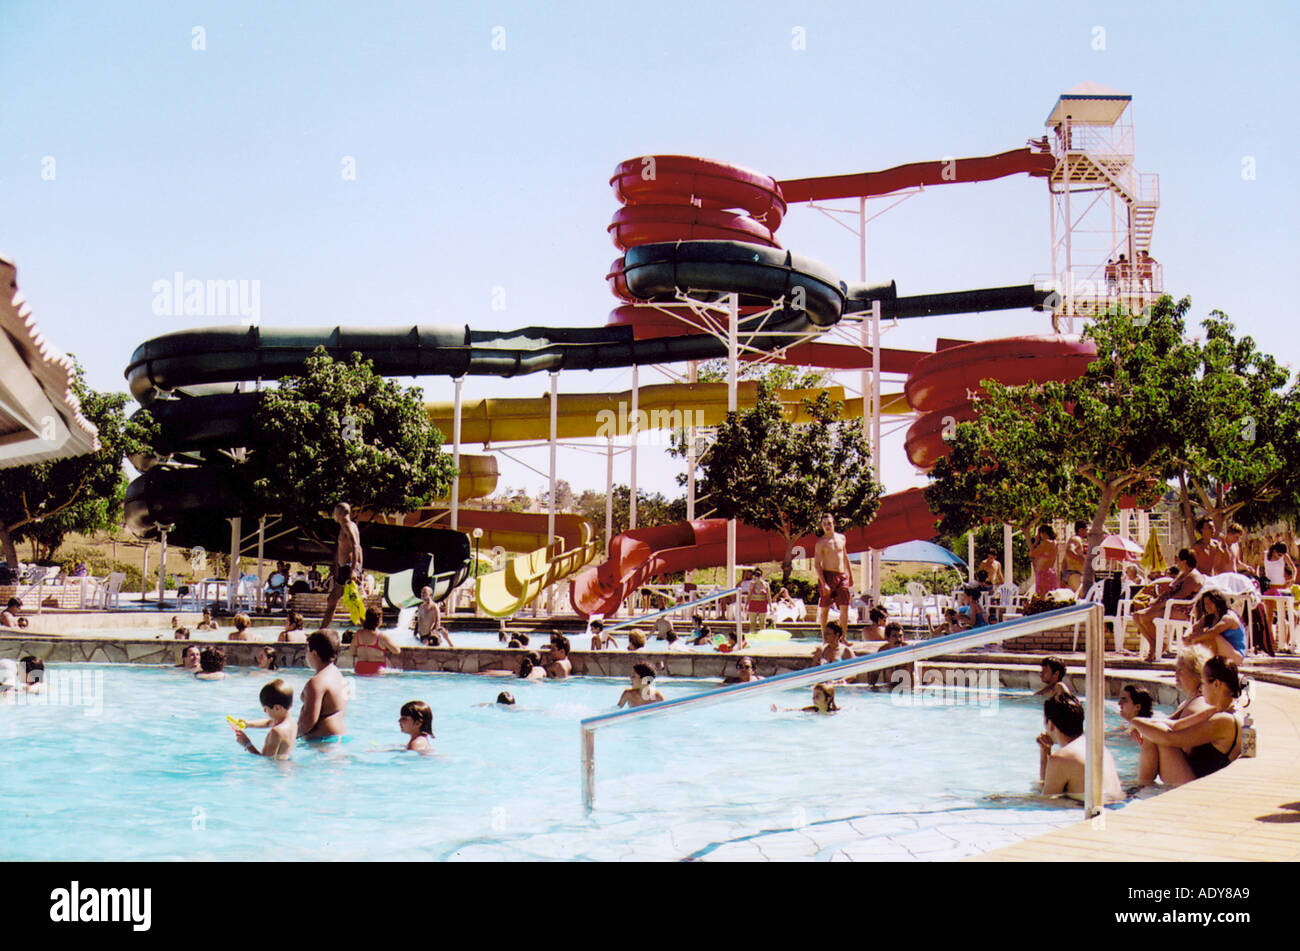 Travel Distrito Federal sun sunny park families people summer hot heat swim swimming bathing water slide caldas novas go trees t - Stock Image